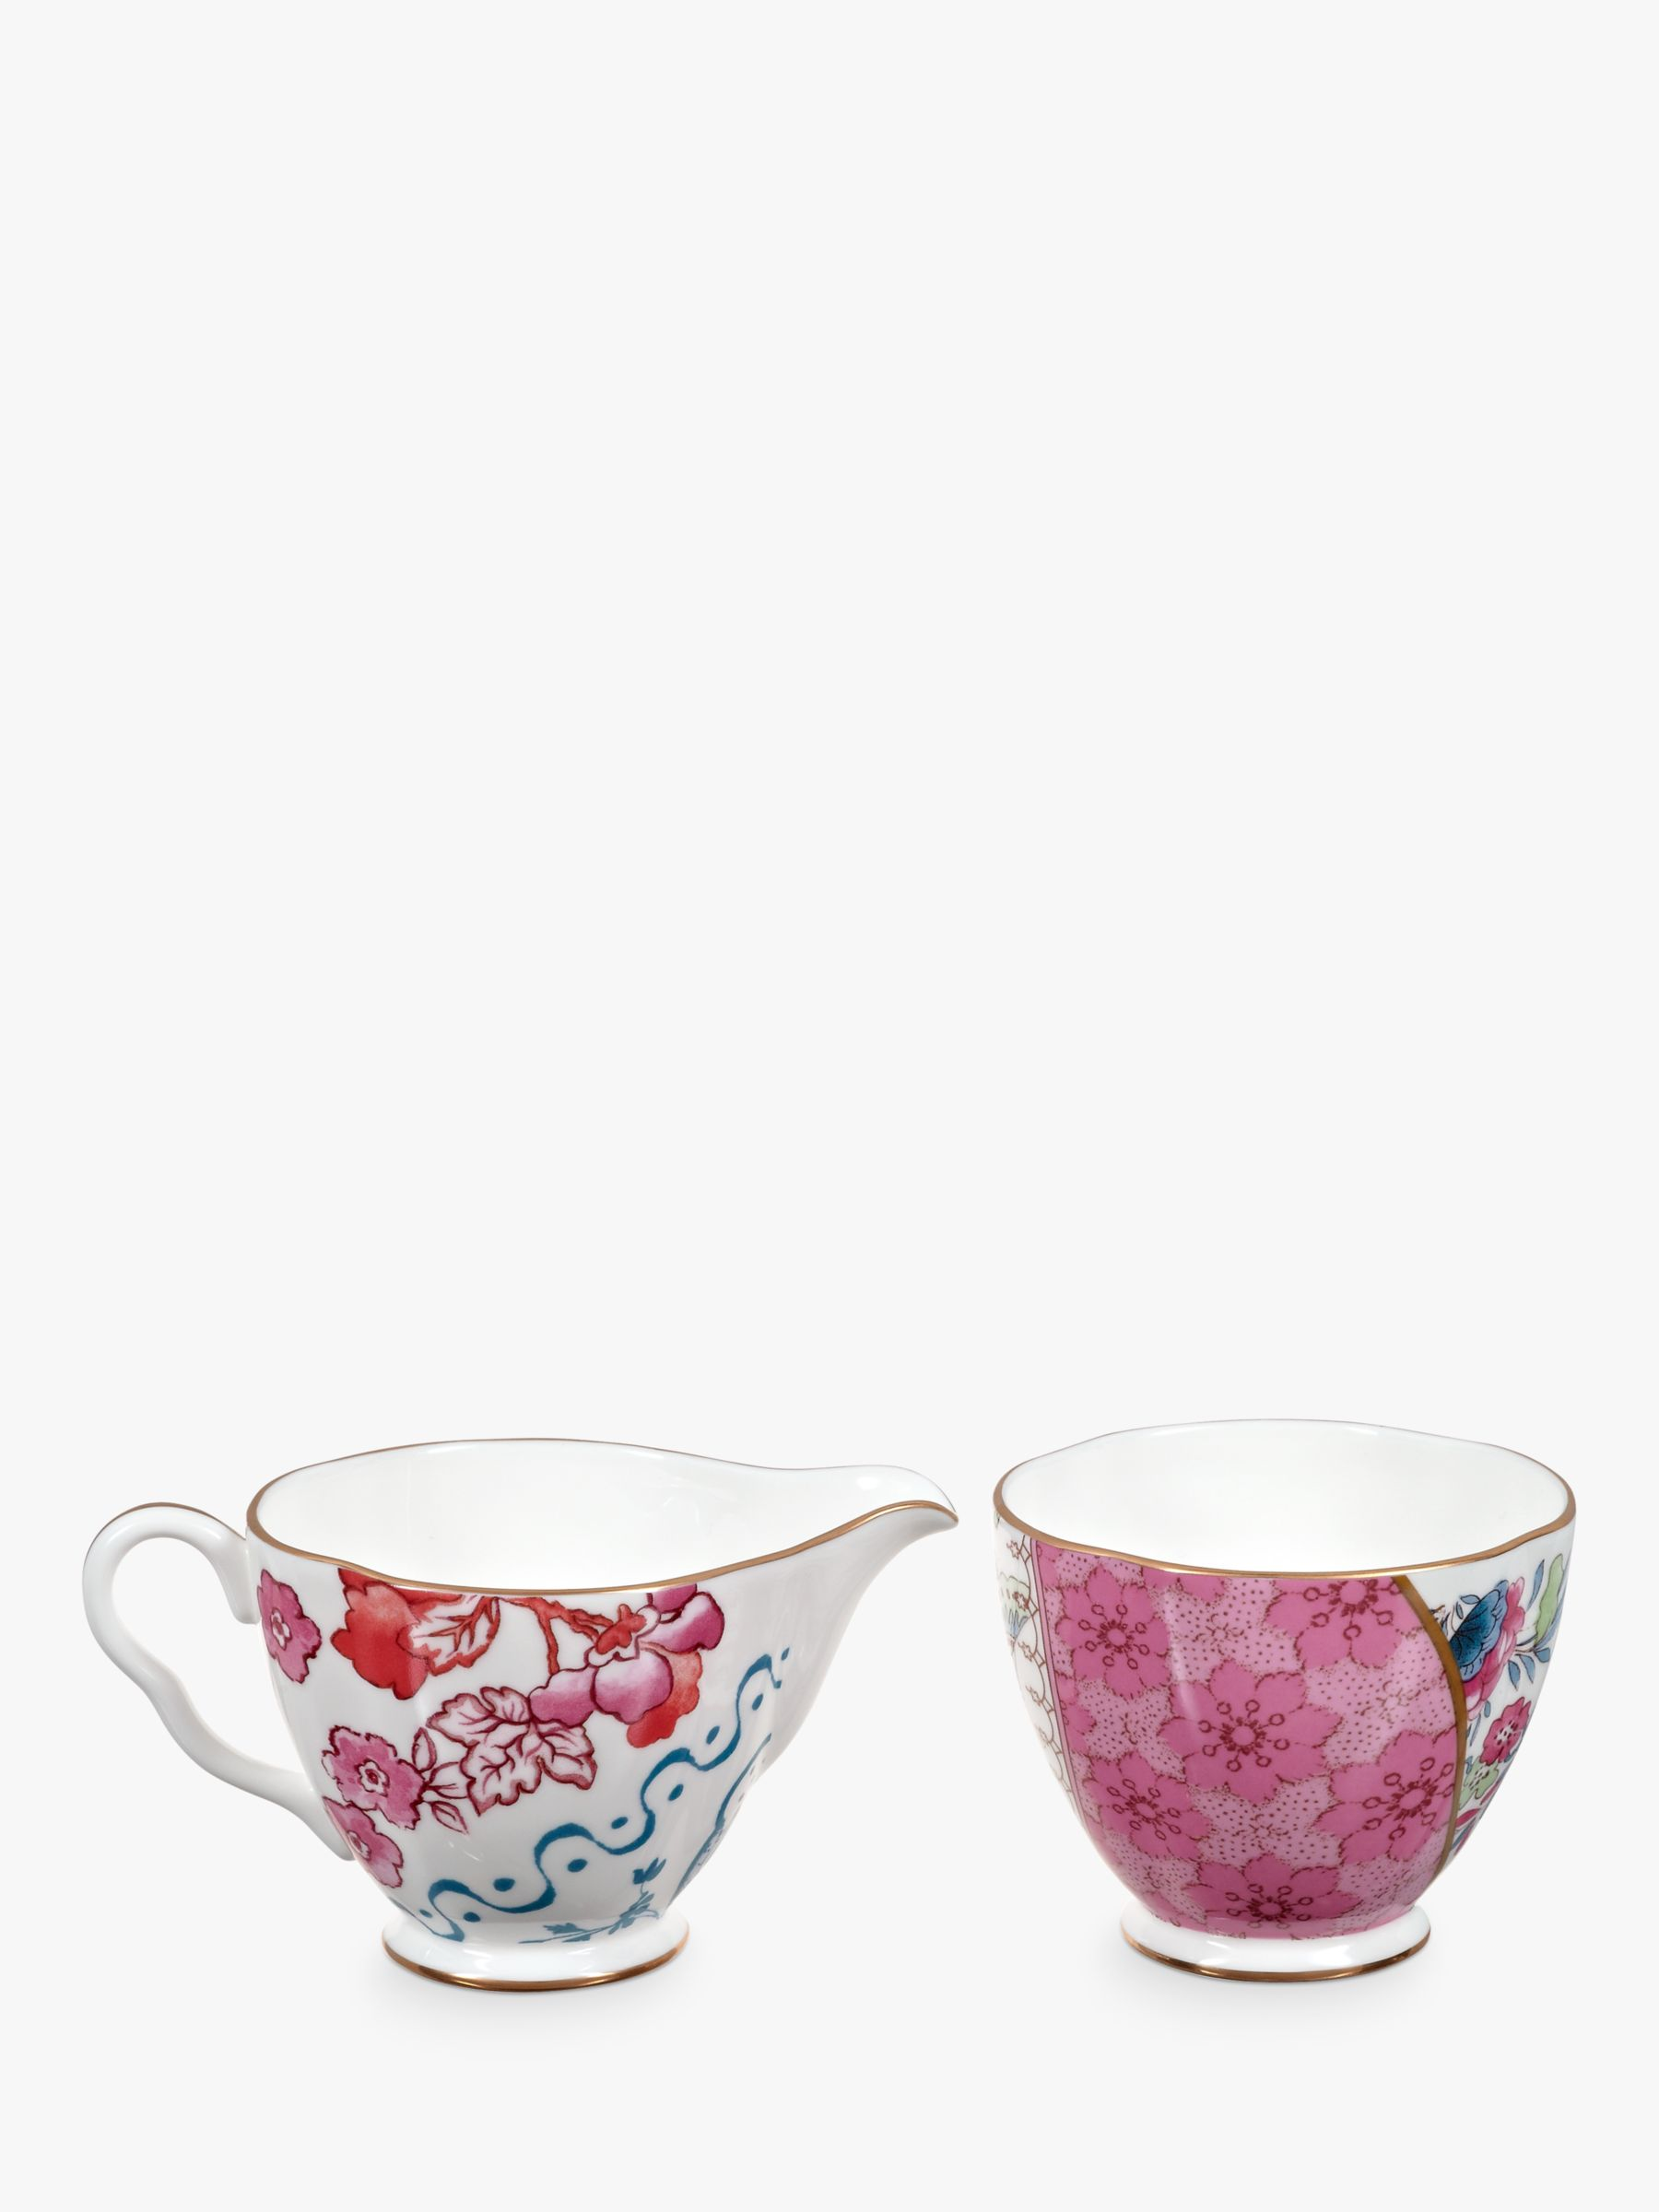 Wedgwood Wedgwood Butterfly Bloom Sugar Bowl and Creamer